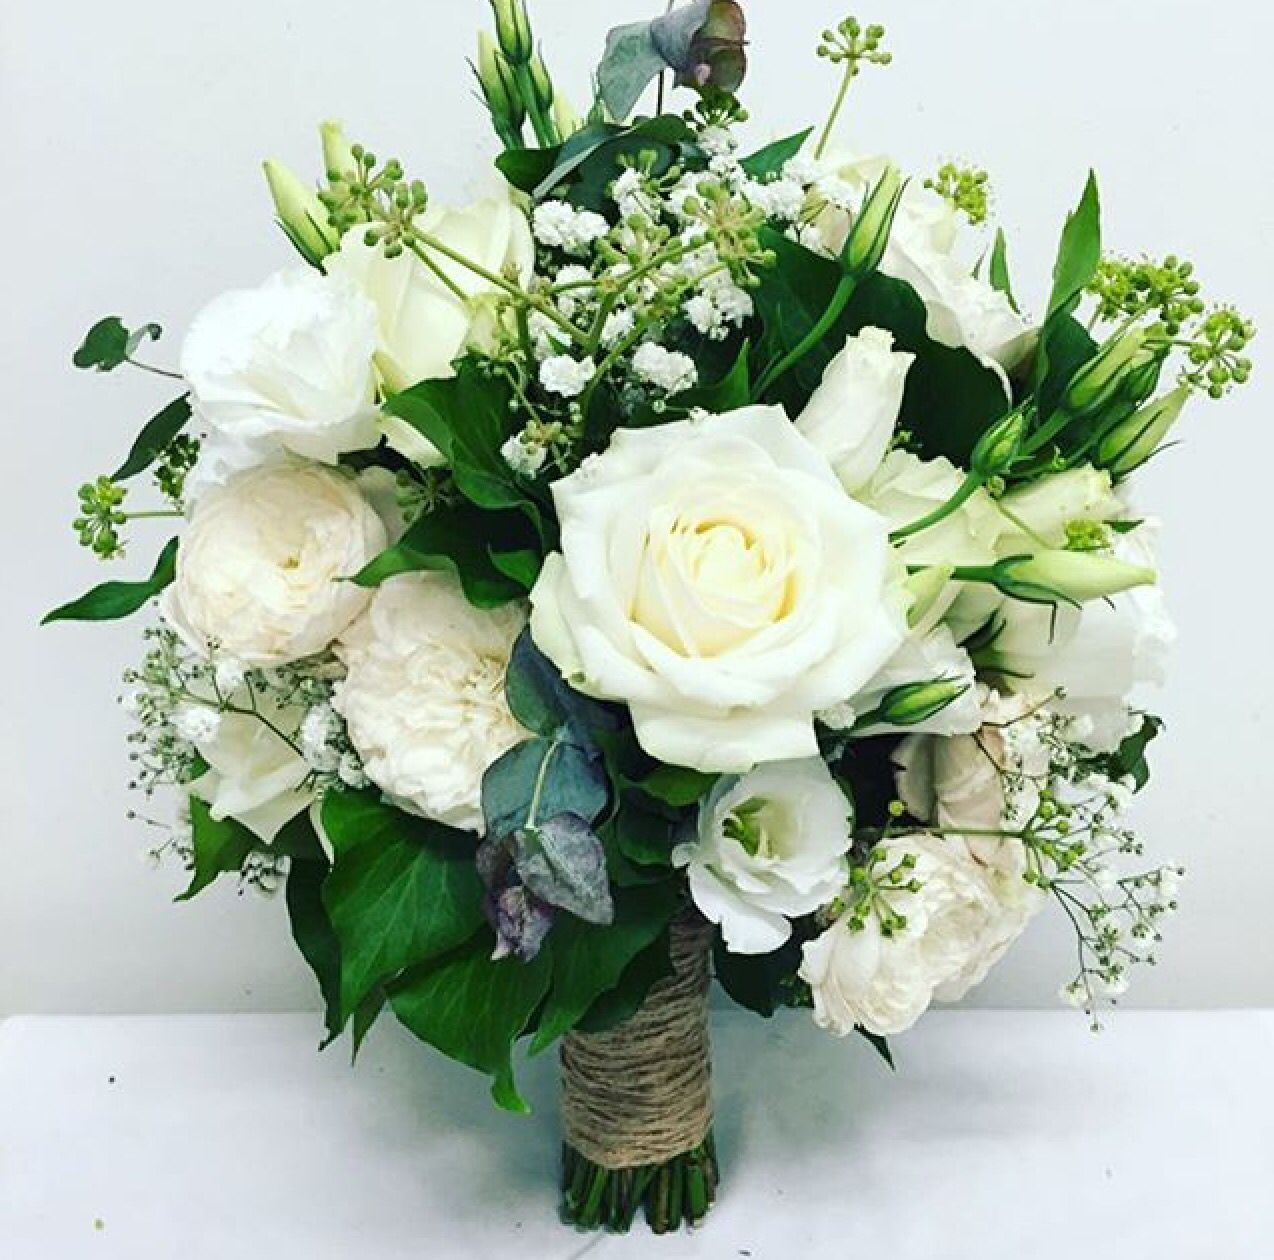 Wedding Flowers Melbourne: Whites And Greens For This Gorgeous Botanical Bridal